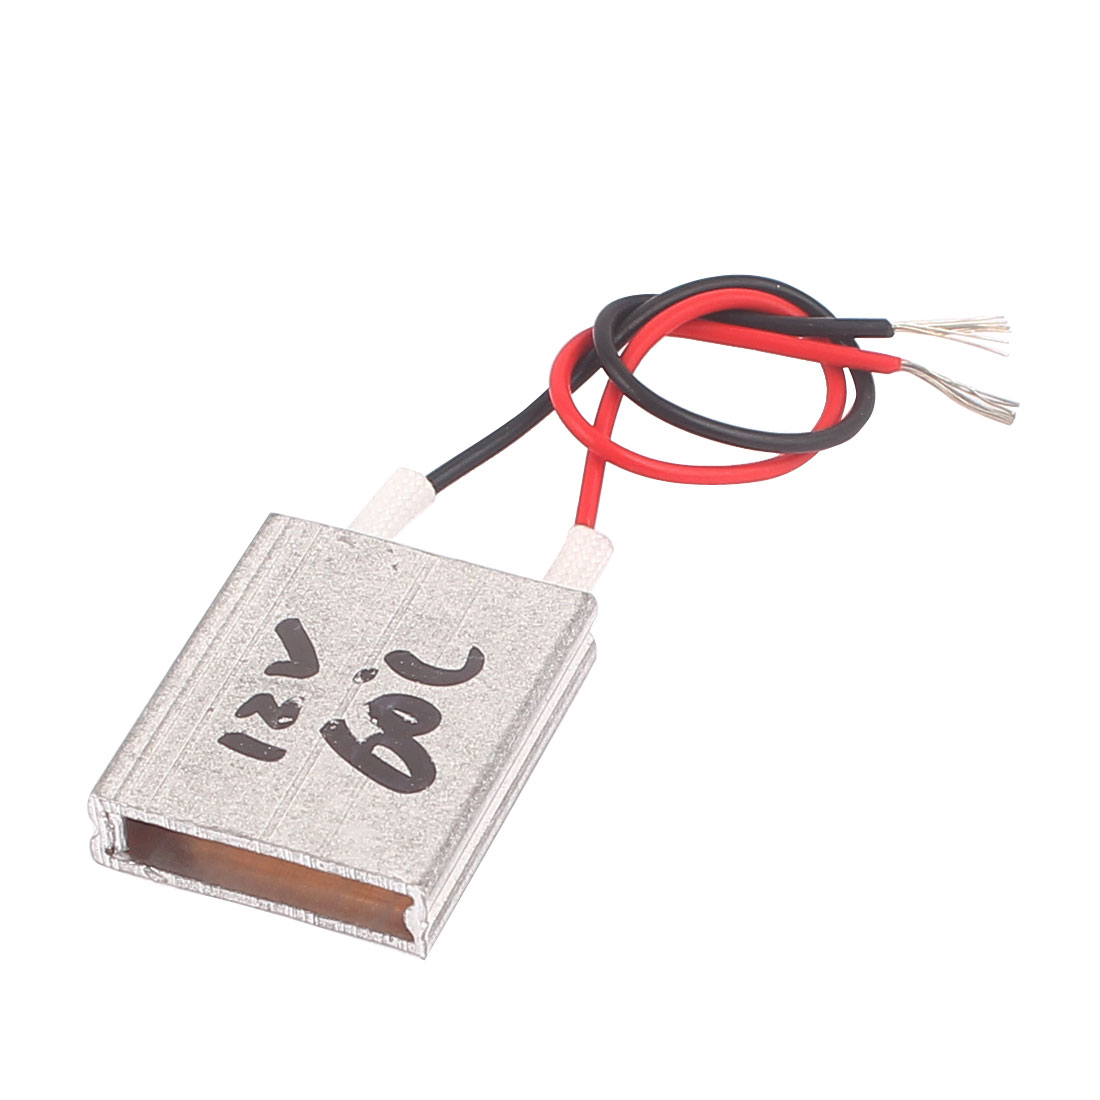 12V 60C Constant Temperature PTC Heating Element Thermostat Heater Plate